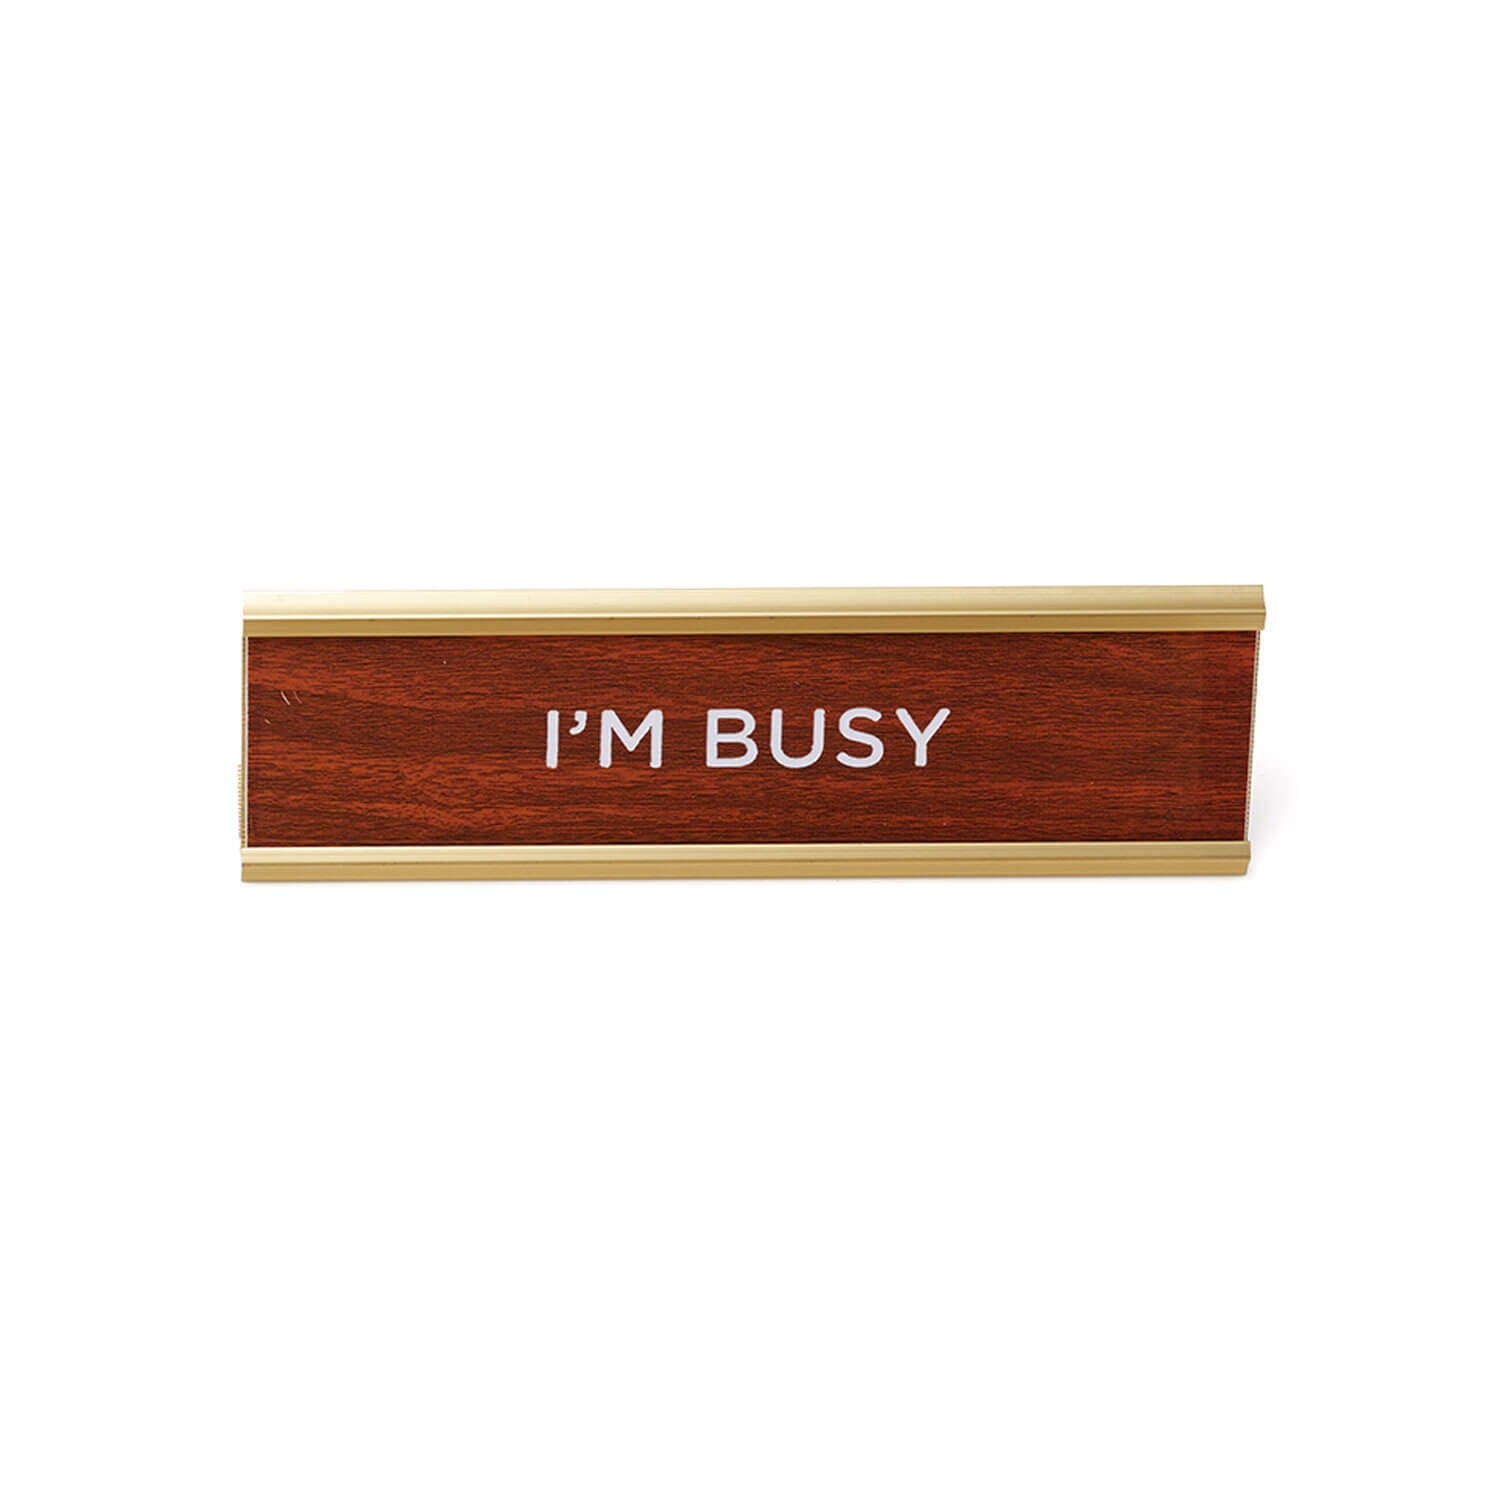 Wood Desk Name Plate - I'M BUSY